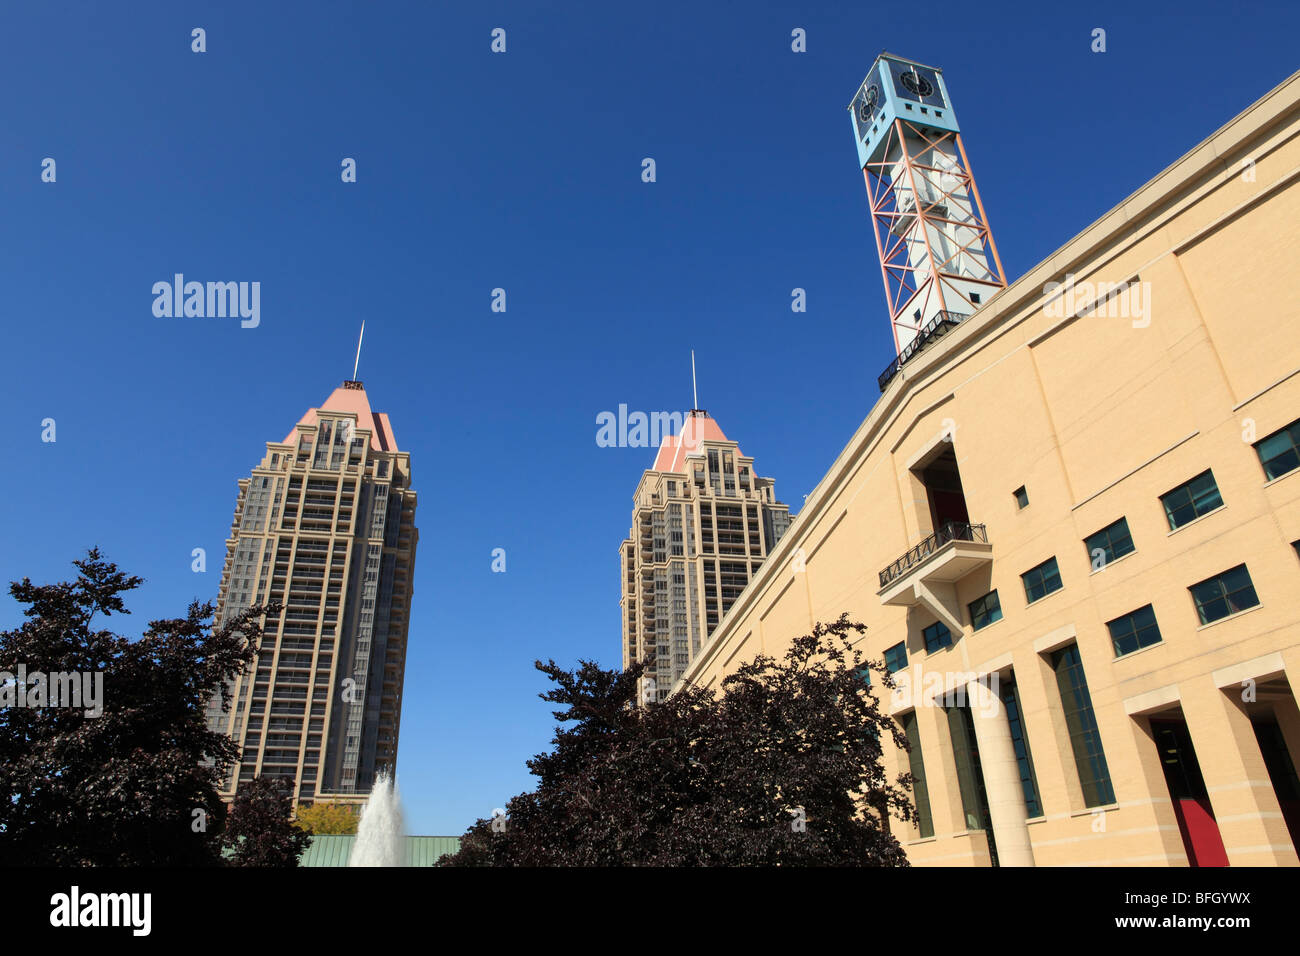 Mississauga City Hall and Condominium Buildings, Mississauga, Ontario, Canada - Stock Image